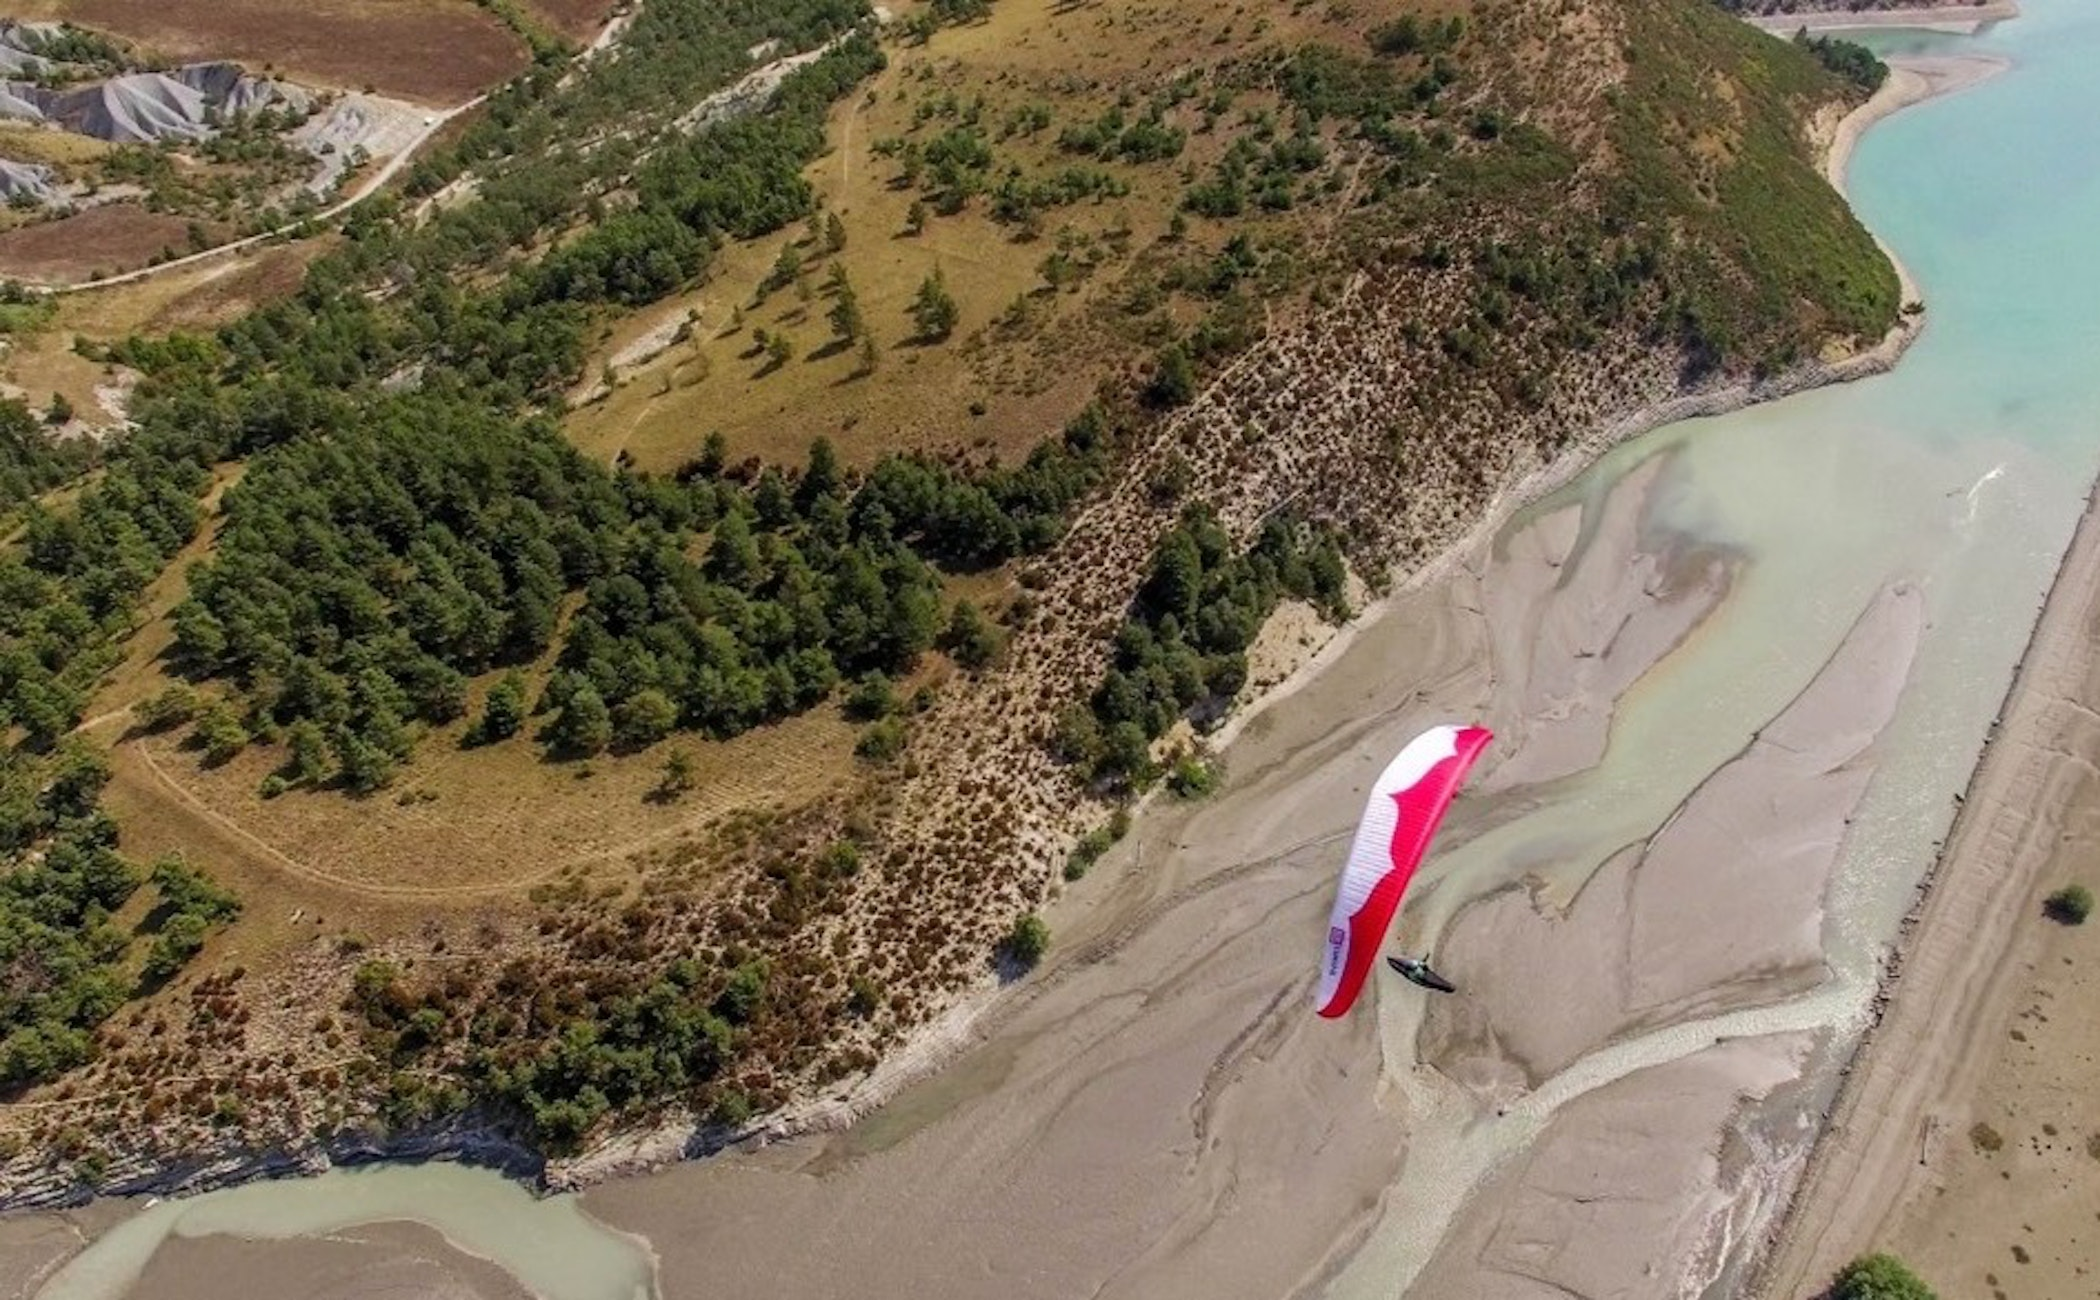 landscape,nature,outdoors,scenery,aerial view,slope,water,soil,wilderness,land